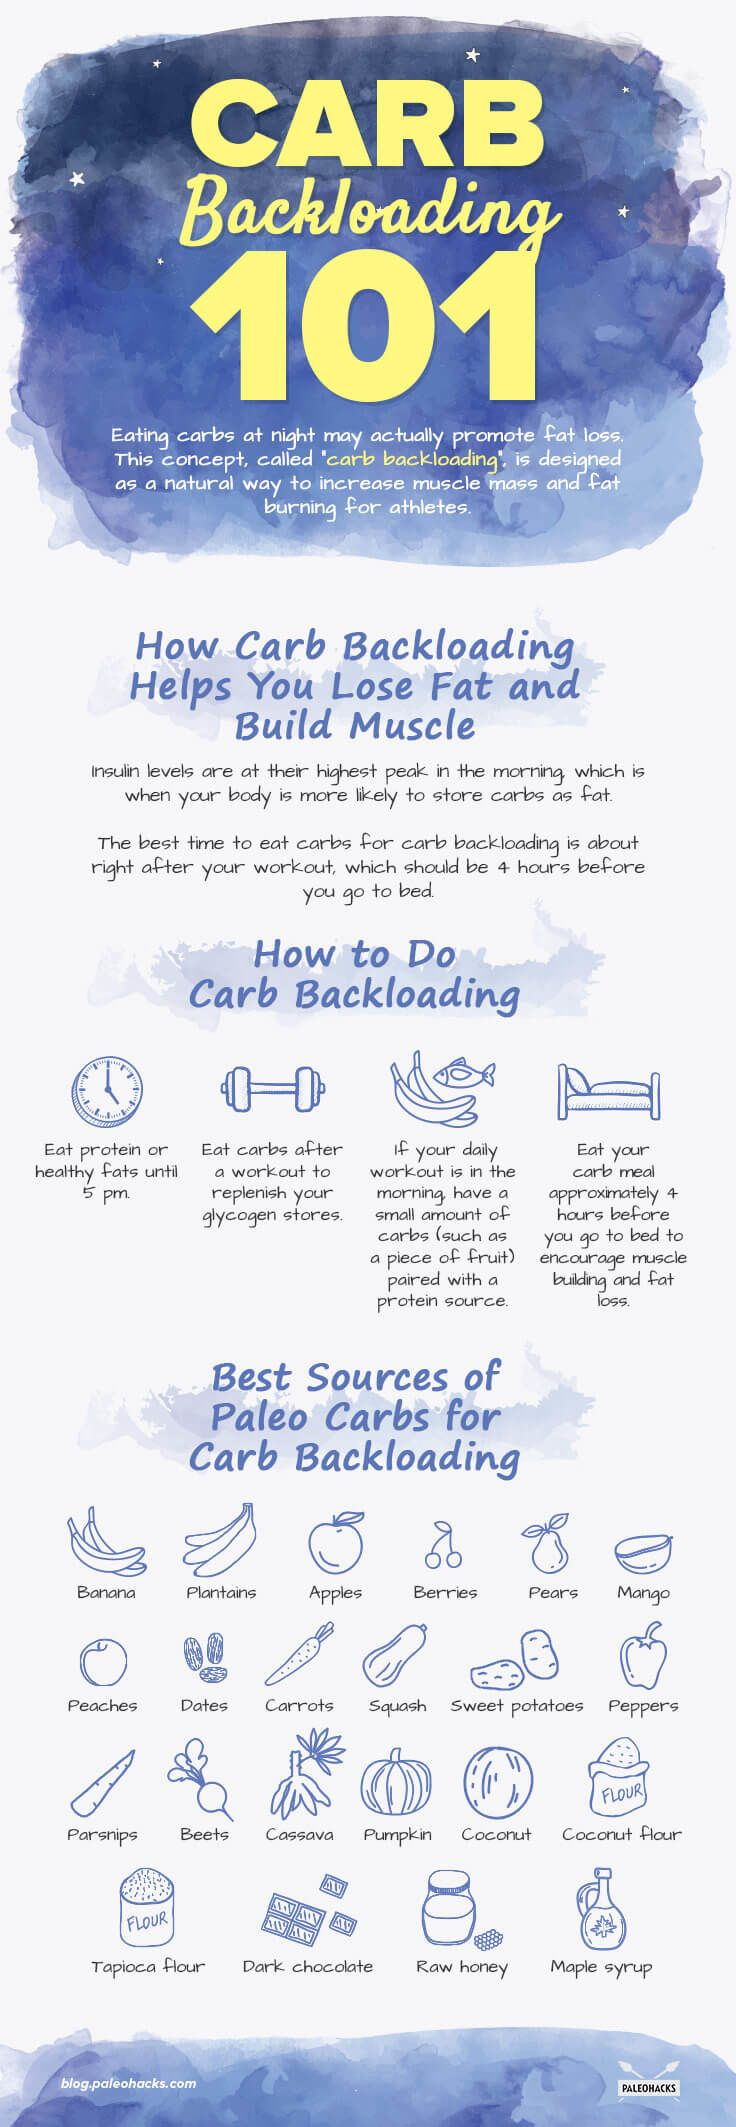 Carb Backloading: Eating Carbohydrates to Get Lean ...